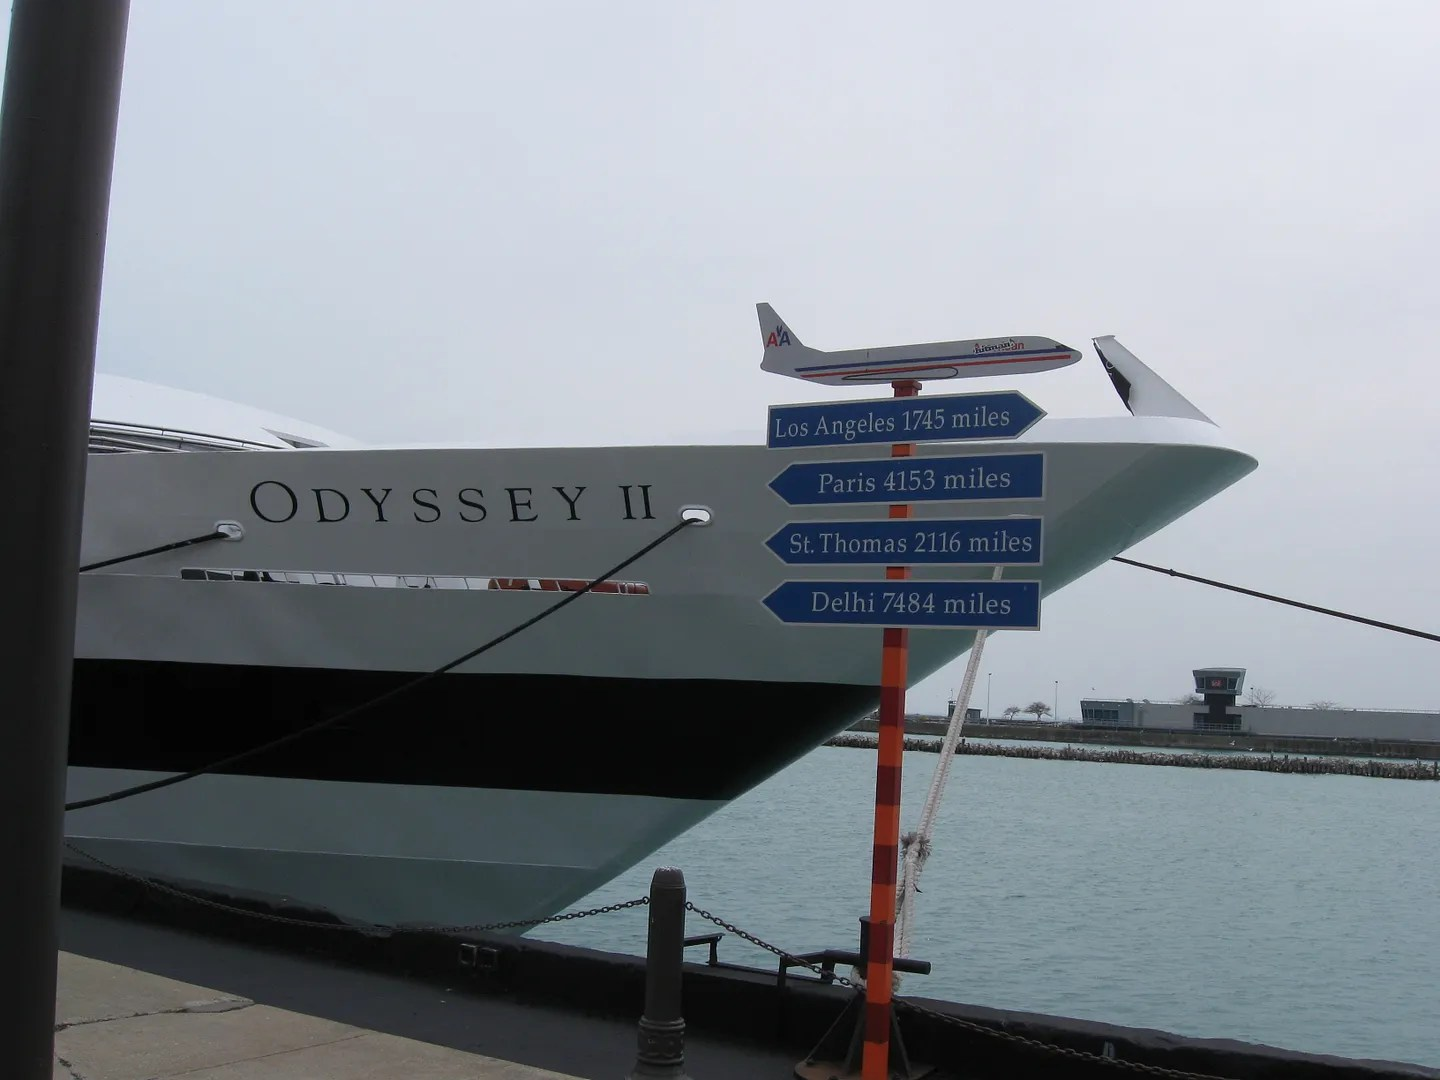 yachts, mileage sign, Navy Pier, Chicago